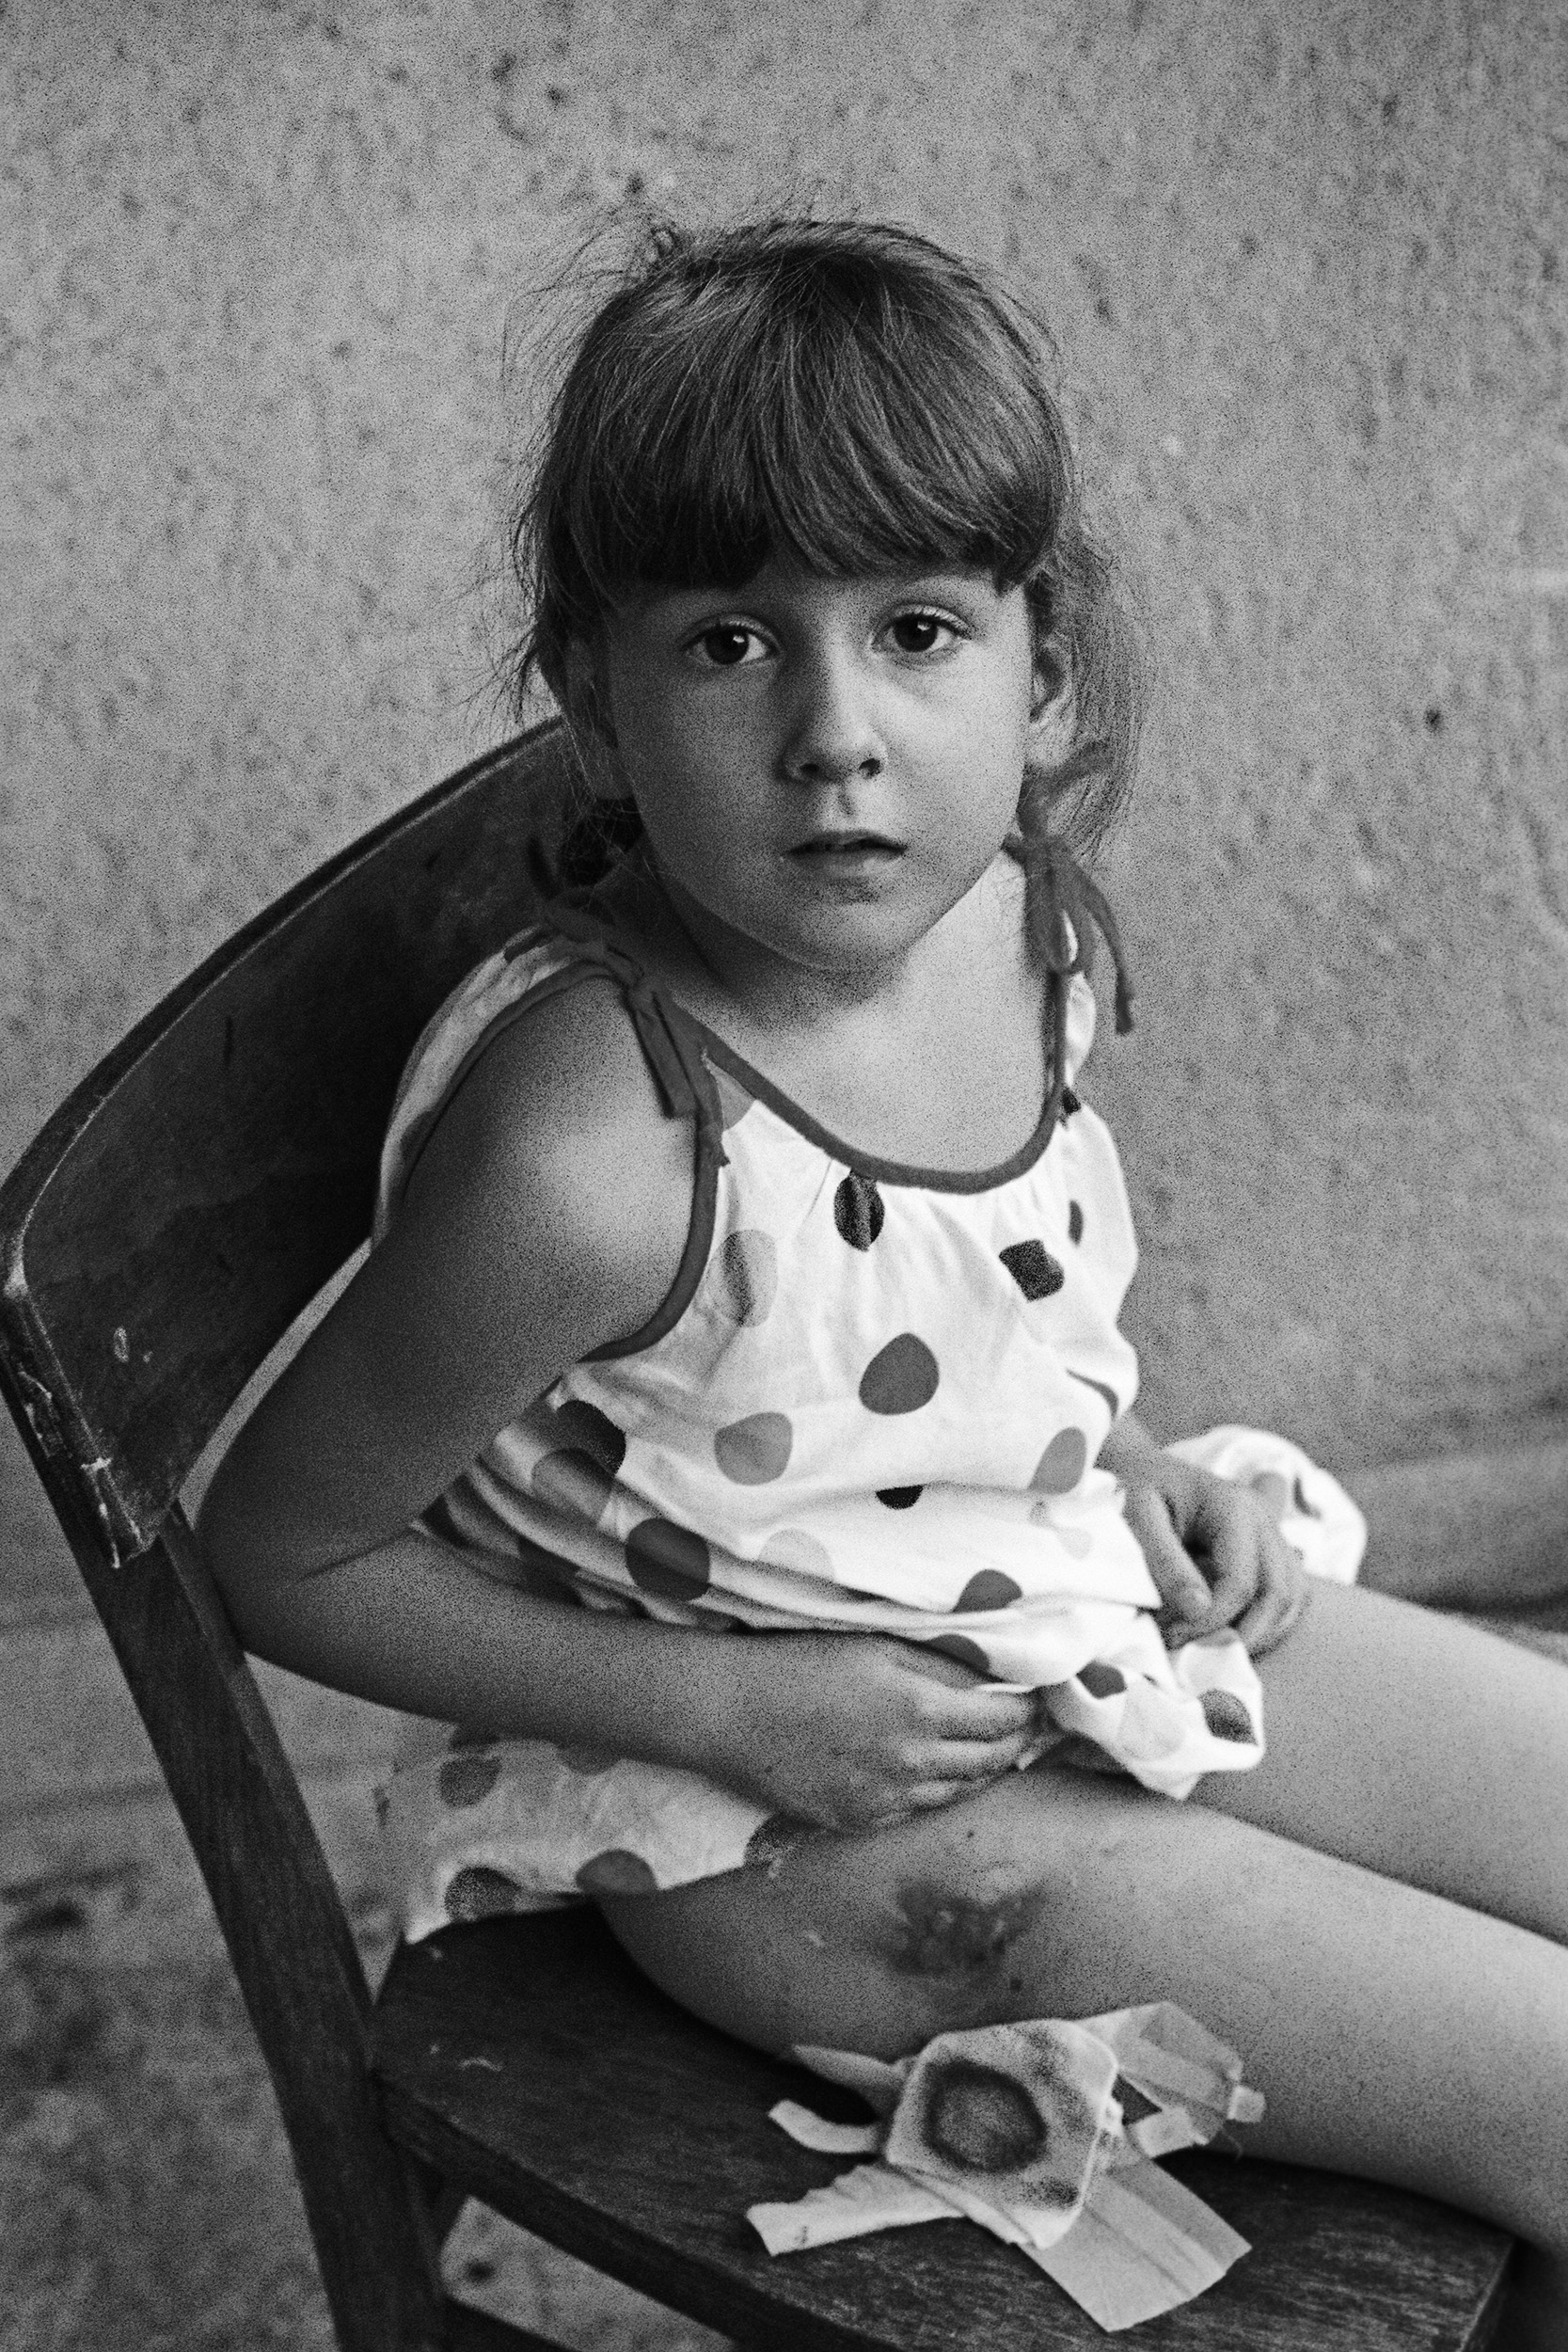 """5 year old Olja Radulovic almost bled to death after she was hit in the back and legs by shrapnel from a mortar shell as she and her sister played in her garden during a Serbian """"cease fire."""""""